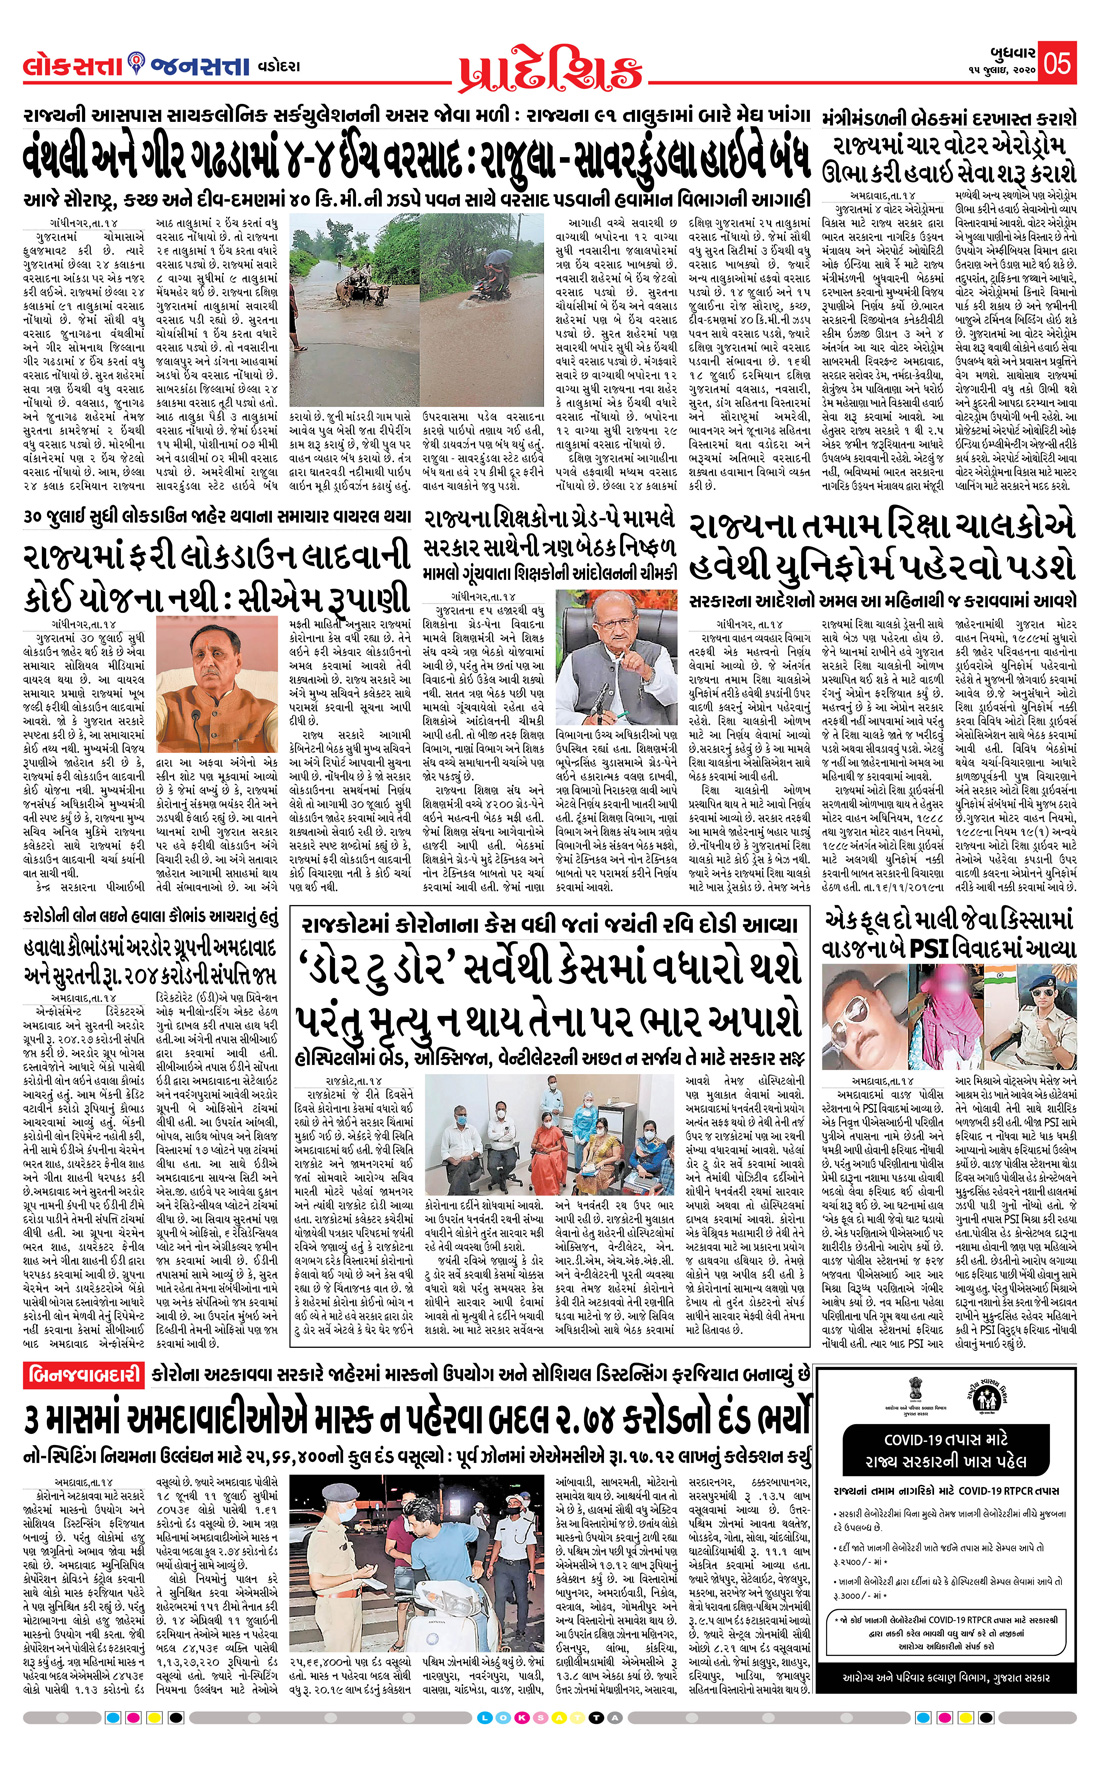 Loksatta Jansatta News Papaer E-paper dated 2020-07-15 | Page 5